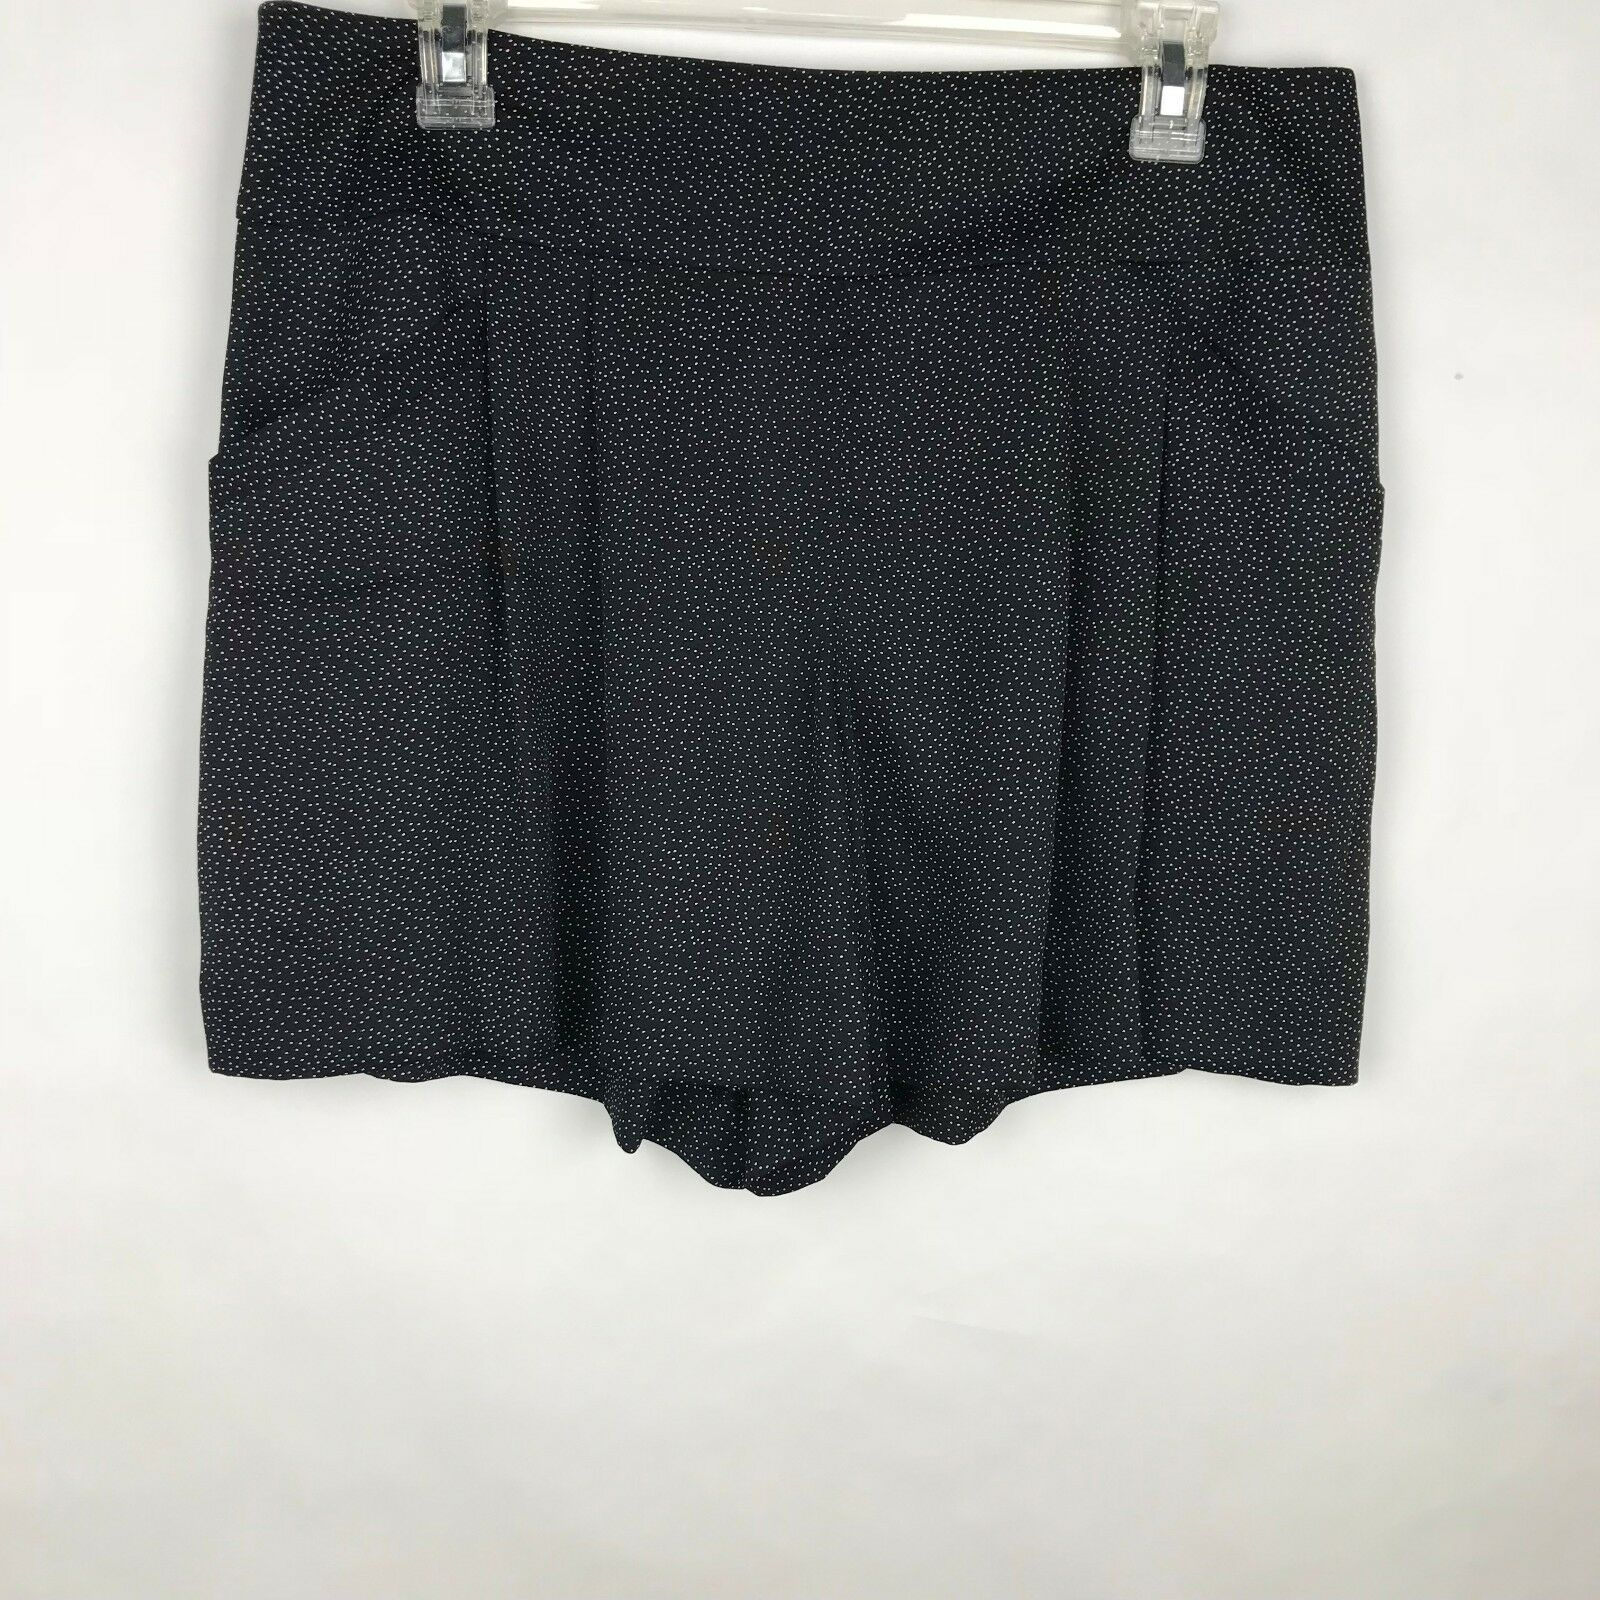 Primary image for Ann Taylor LOFT Women's Size 8 Black White Polka Dot Shorts Classic Pleated